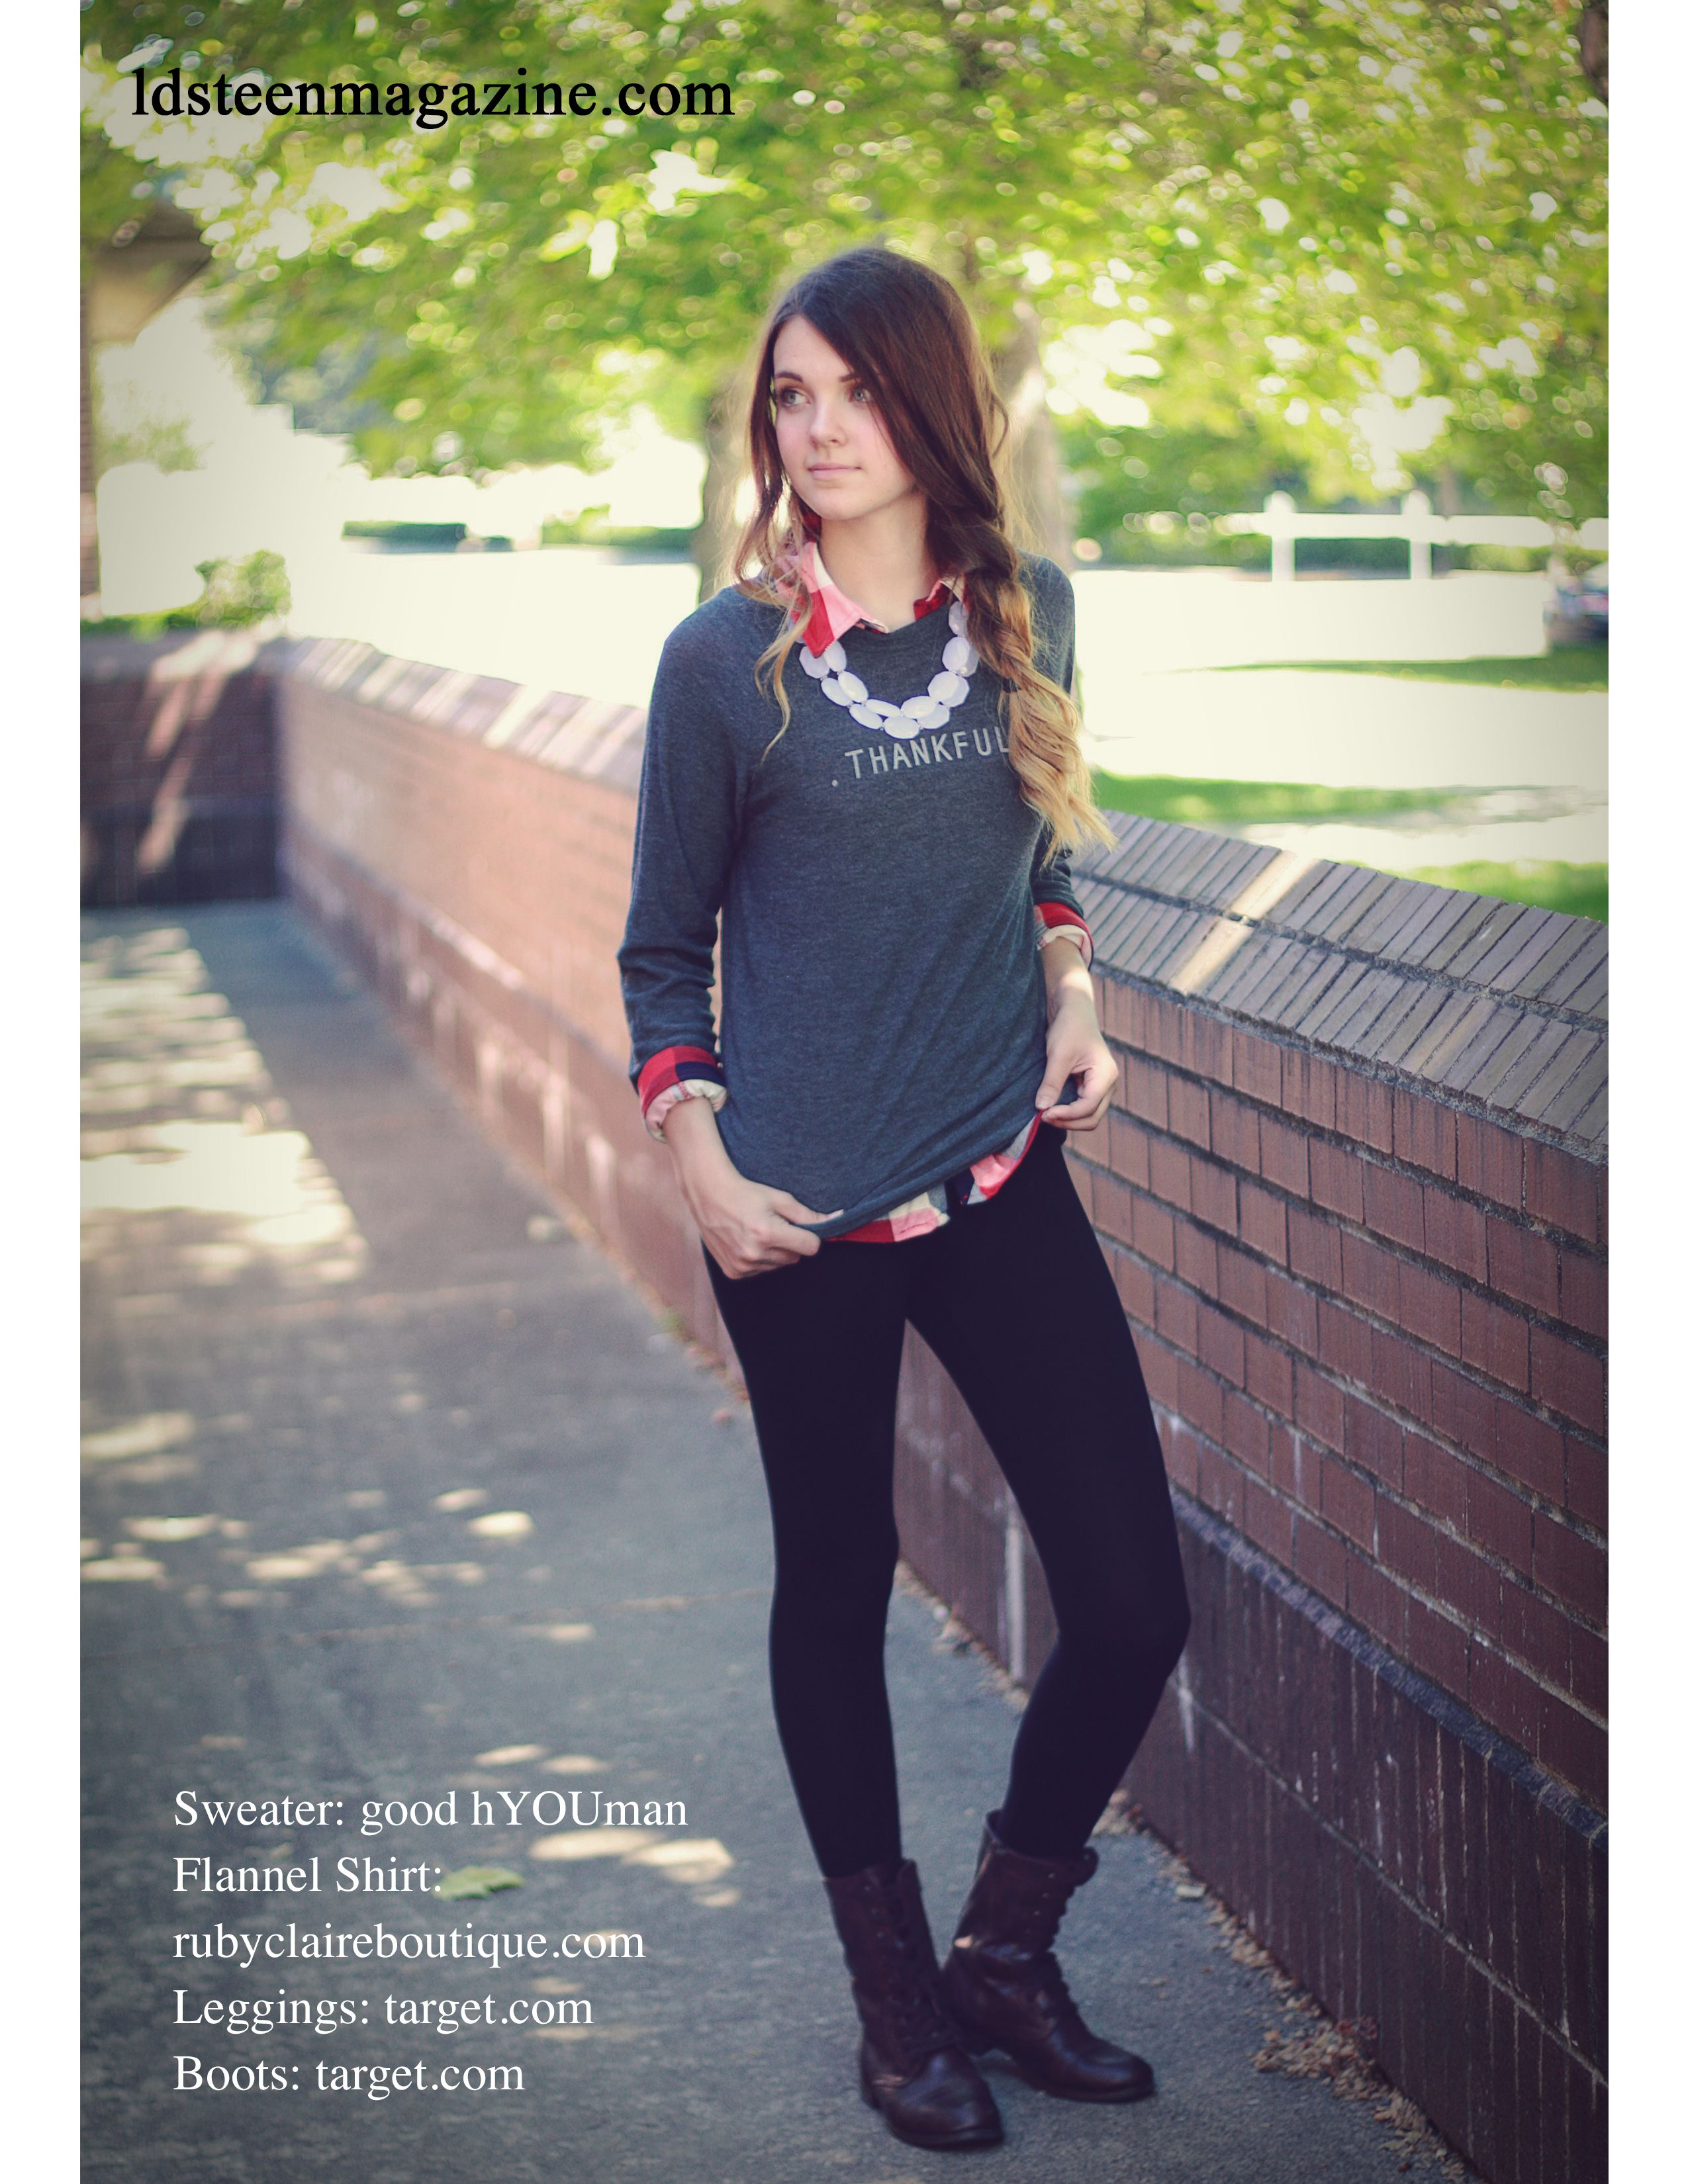 Cute Outfit From An Issue Of Lds Teen Magazine A Free Magazine For Lds Teen Girls Ldsteenmagazine Com